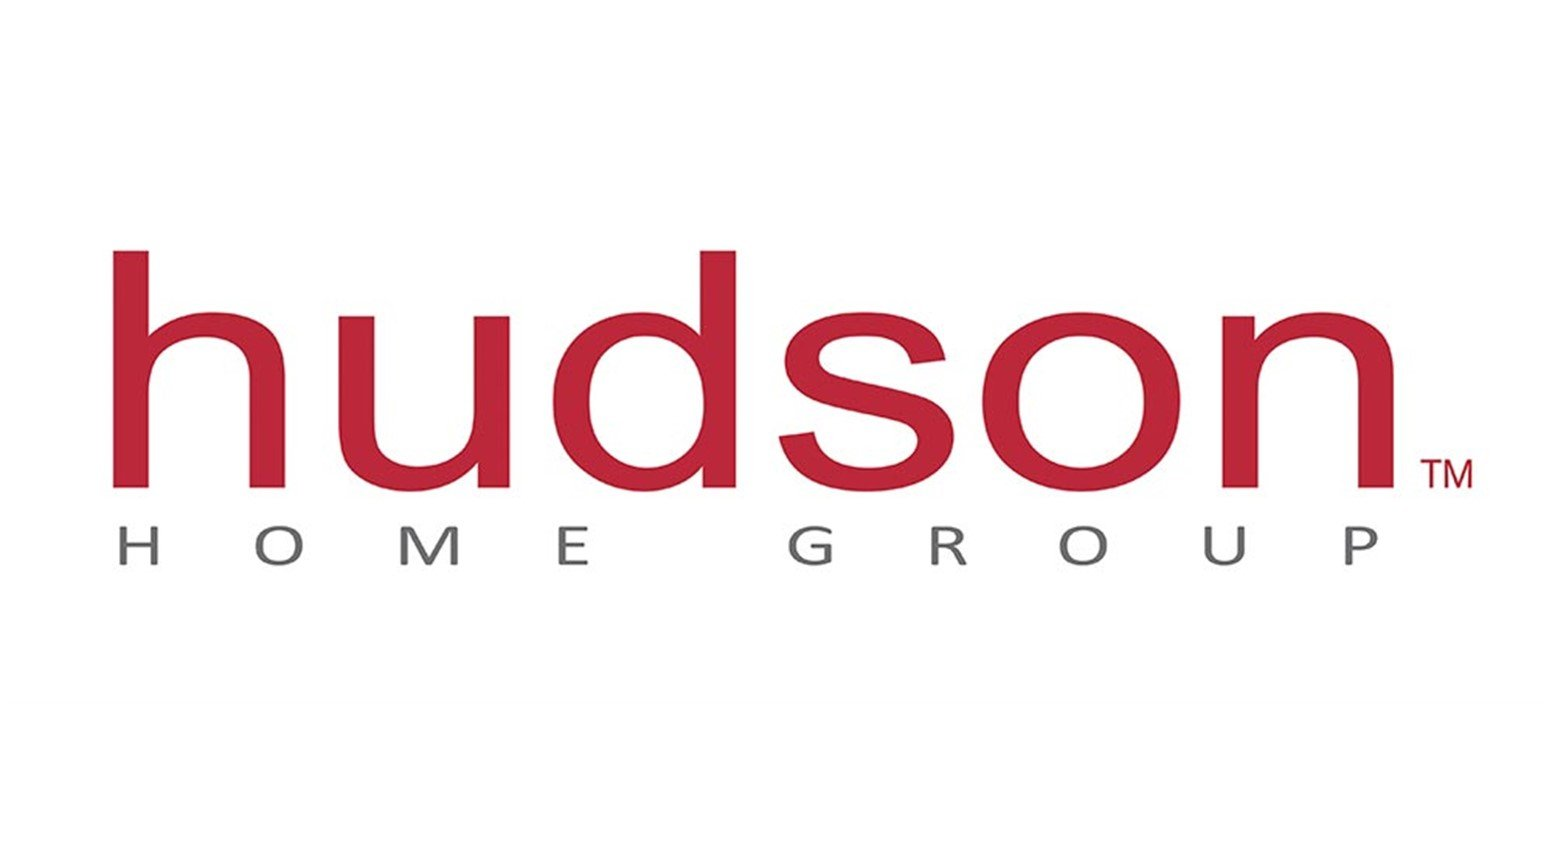 Hudson Home Group